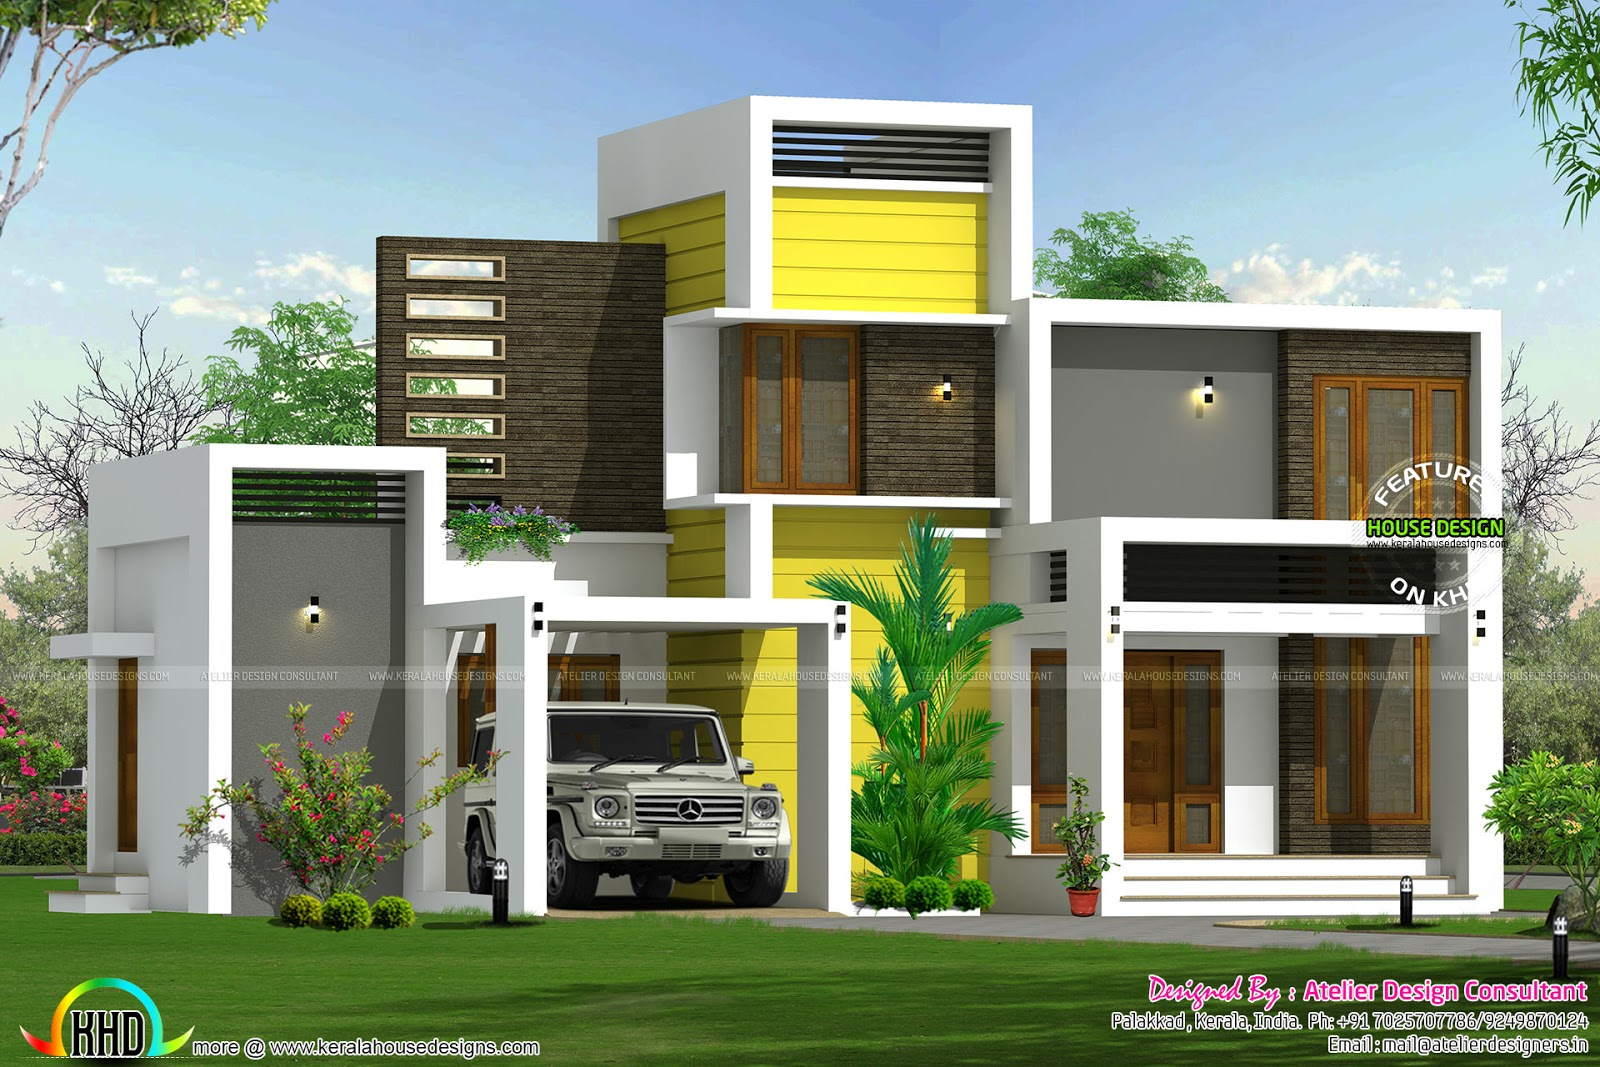 16 lakhs house plan architecture kerala home design and for Architect design house plans